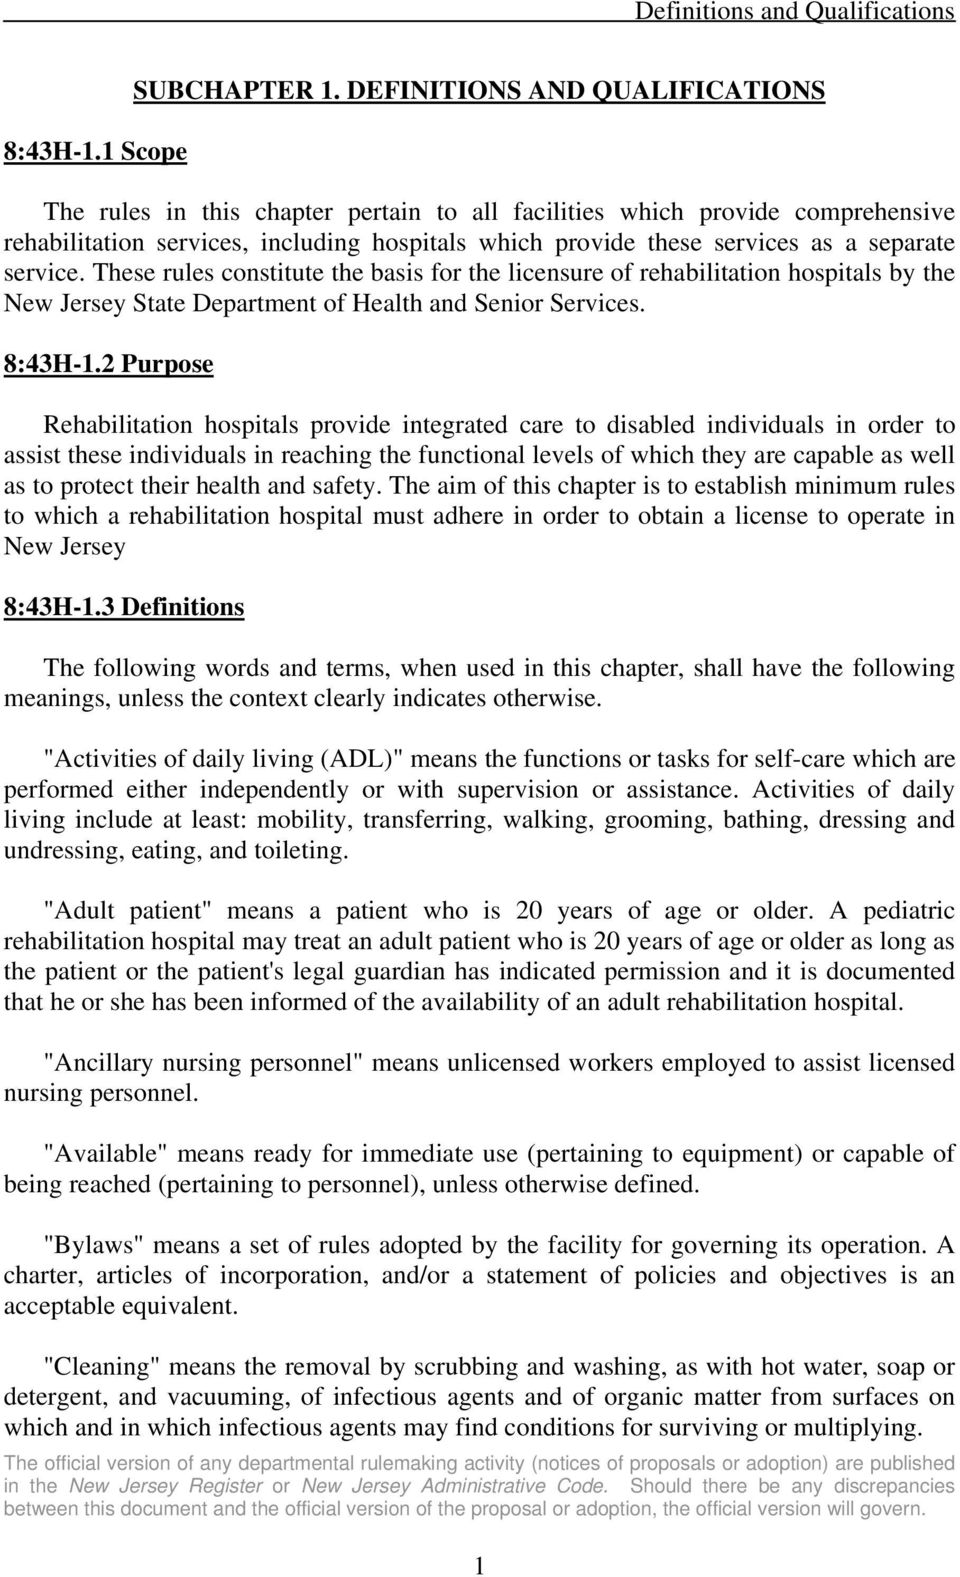 service. These rules constitute the basis for the licensure of rehabilitation hospitals by the New Jersey State Department of Health and Senior Services. 8:43H-1.